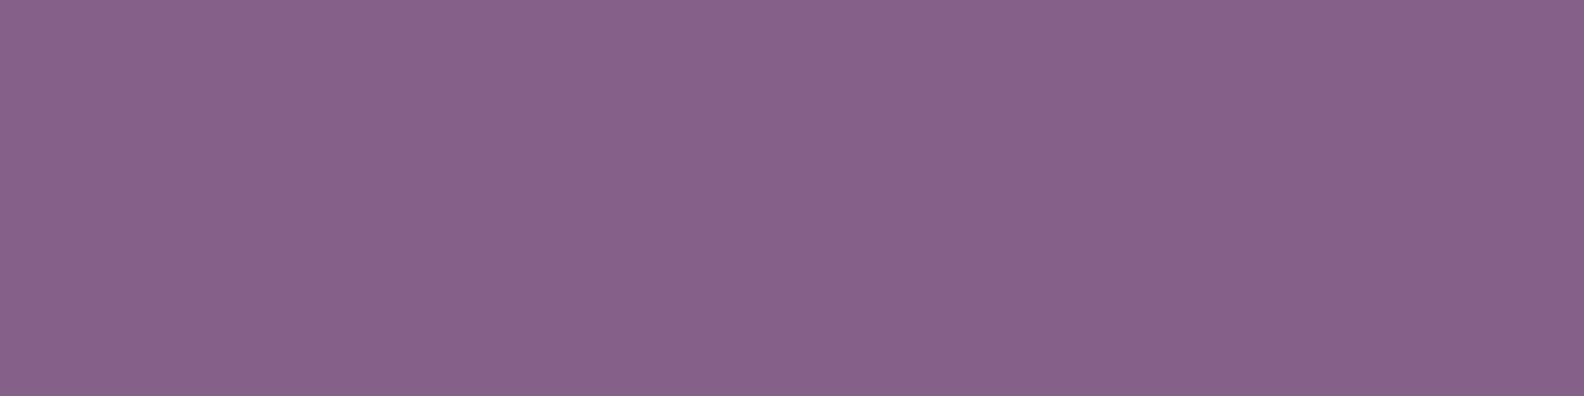 1584x396 Chinese Violet Solid Color Background